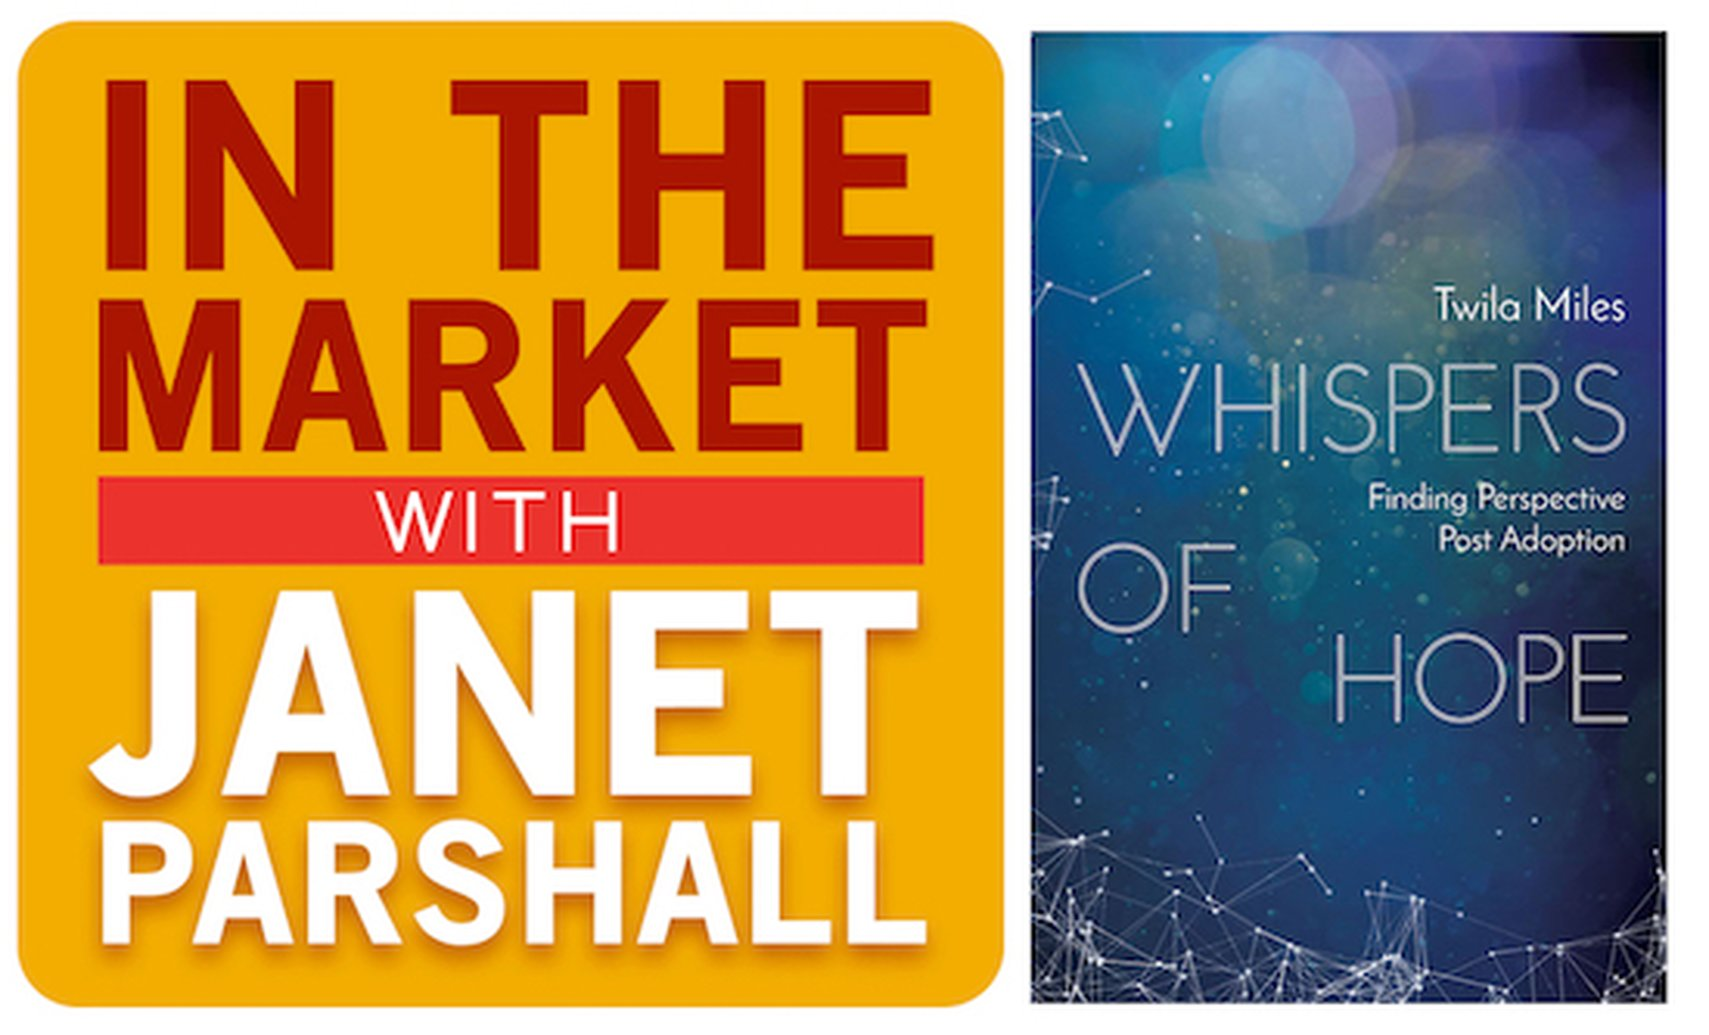 Adoption Perspective - Interview with Twila Miles on In the Market with Janet Parshall